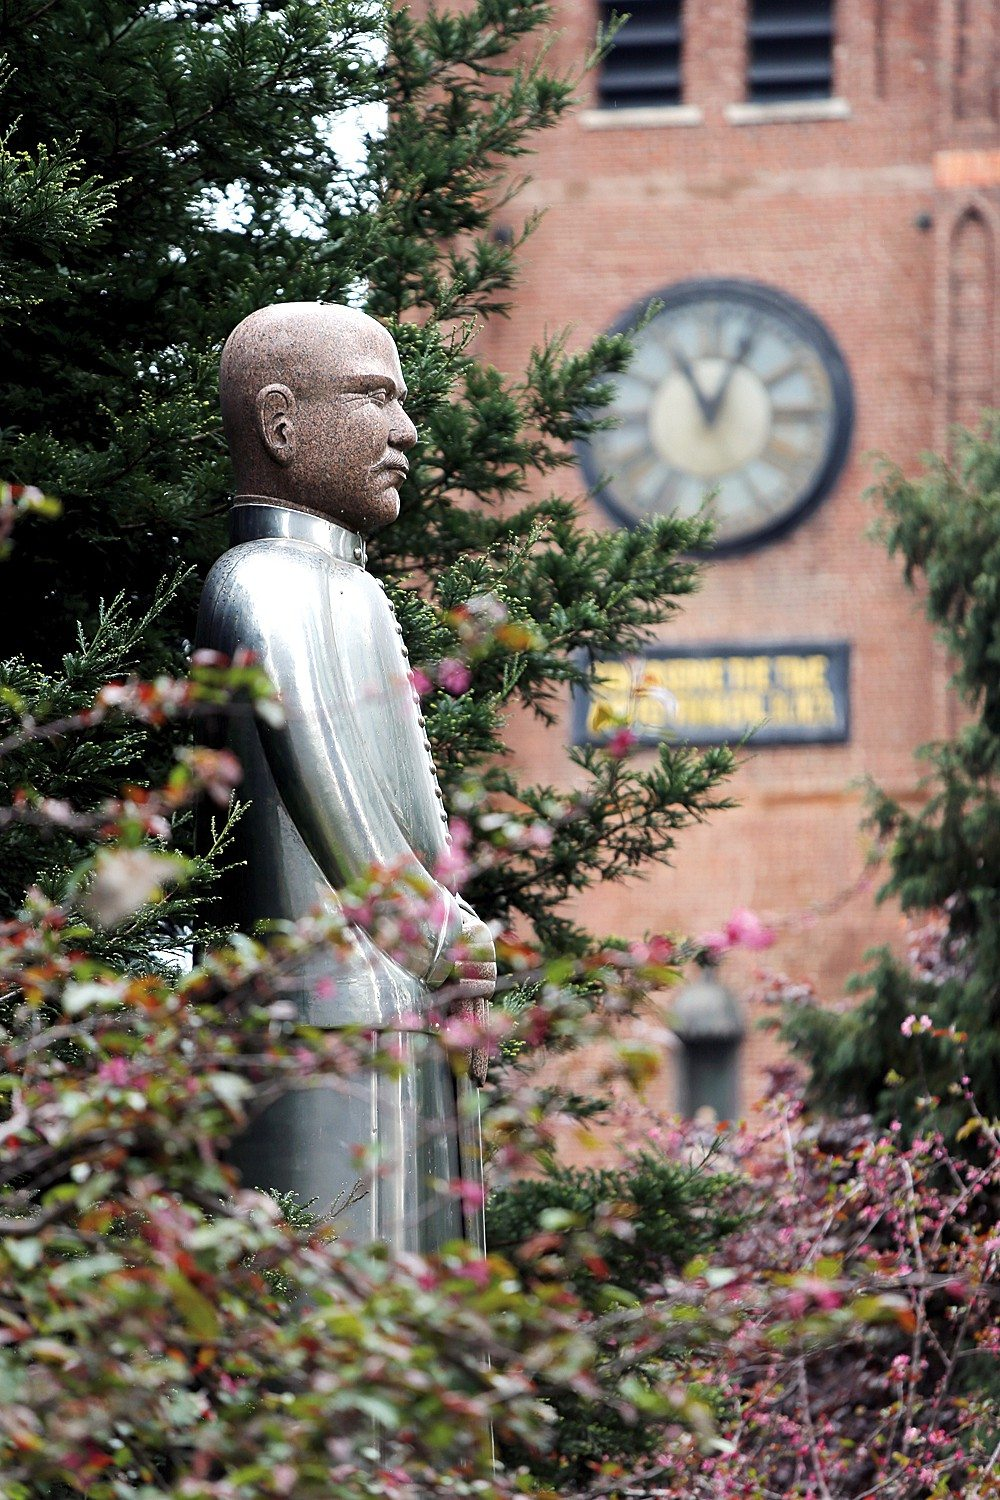 MIke Koozmin/The S.f. ExaminerSun Yat-sen has a statue in St. Mary's Square in Chinatown